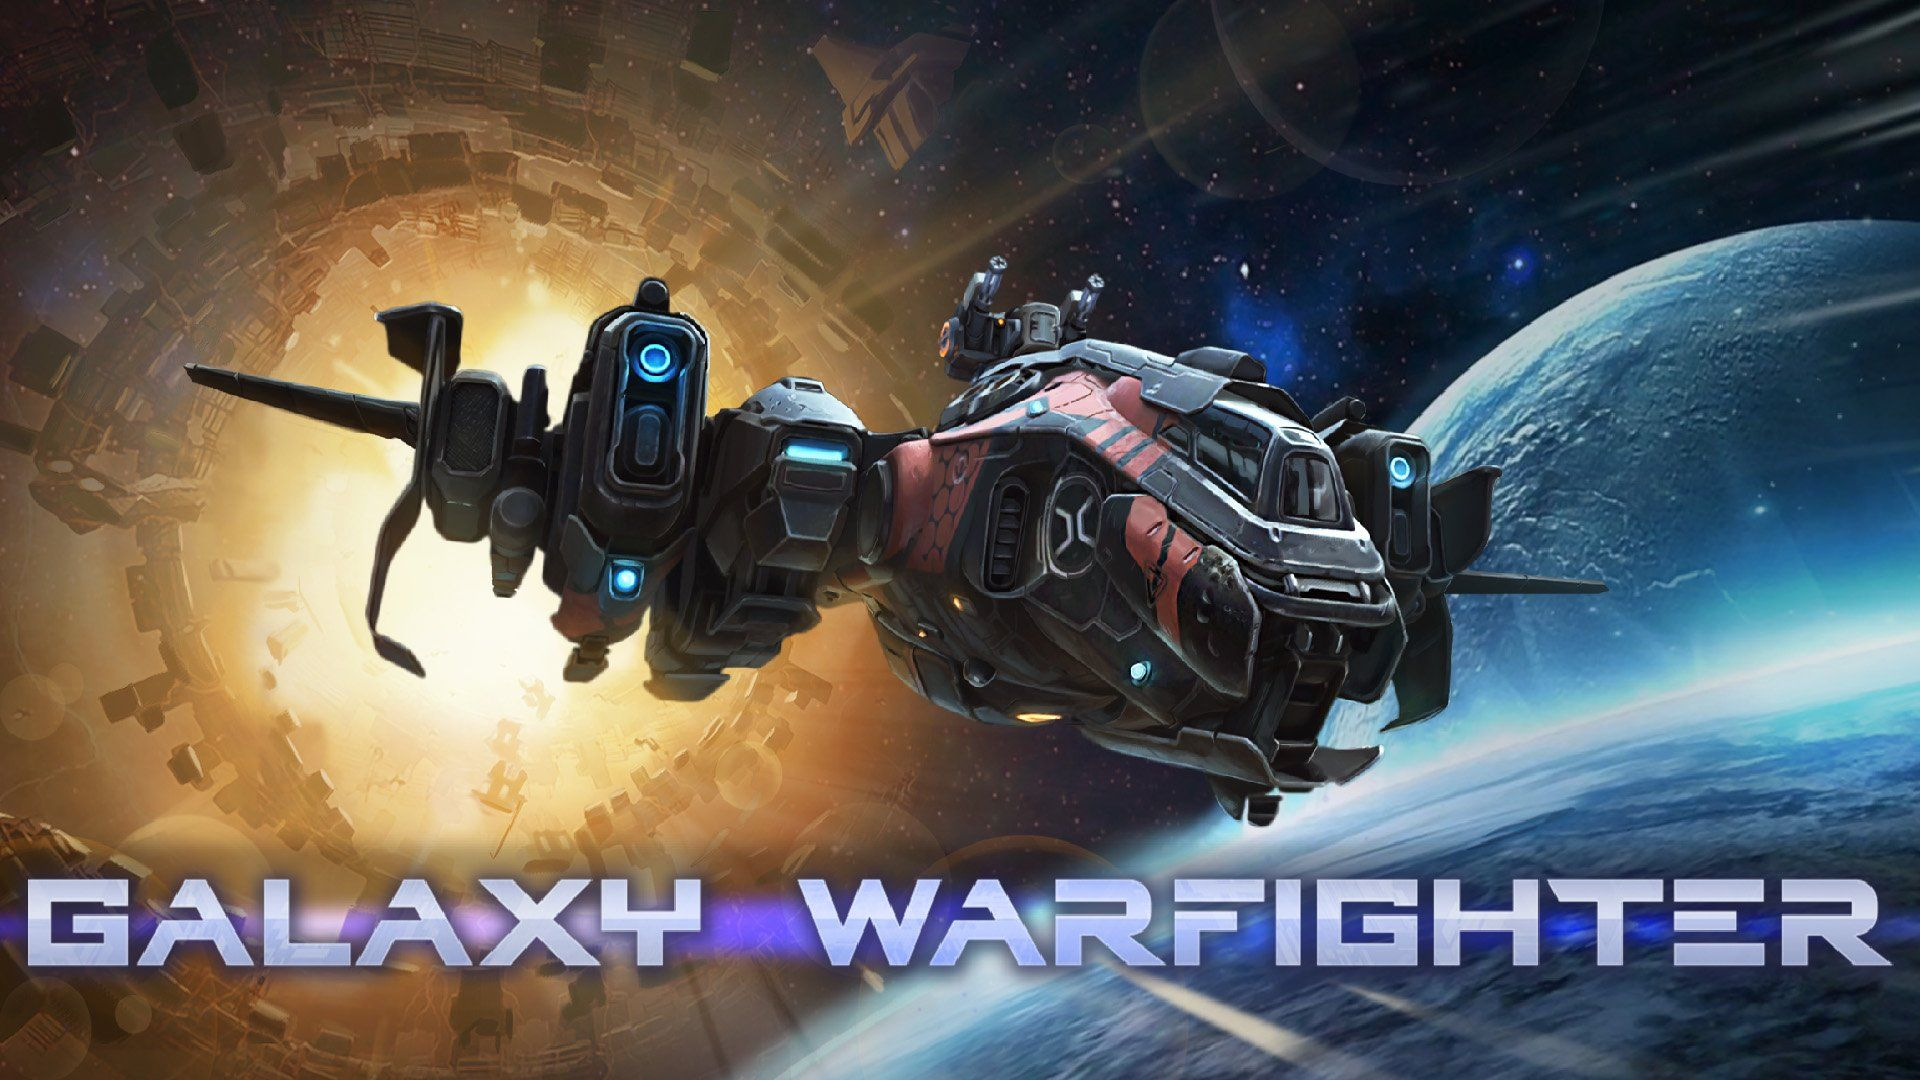 Retro Space Shoot Em Up Galaxy Warfighter Now Available On Pc And Nintendo Switch Galaxywarfighter Joybits Ninte Nintendo Switch Game Download Free Galaxy